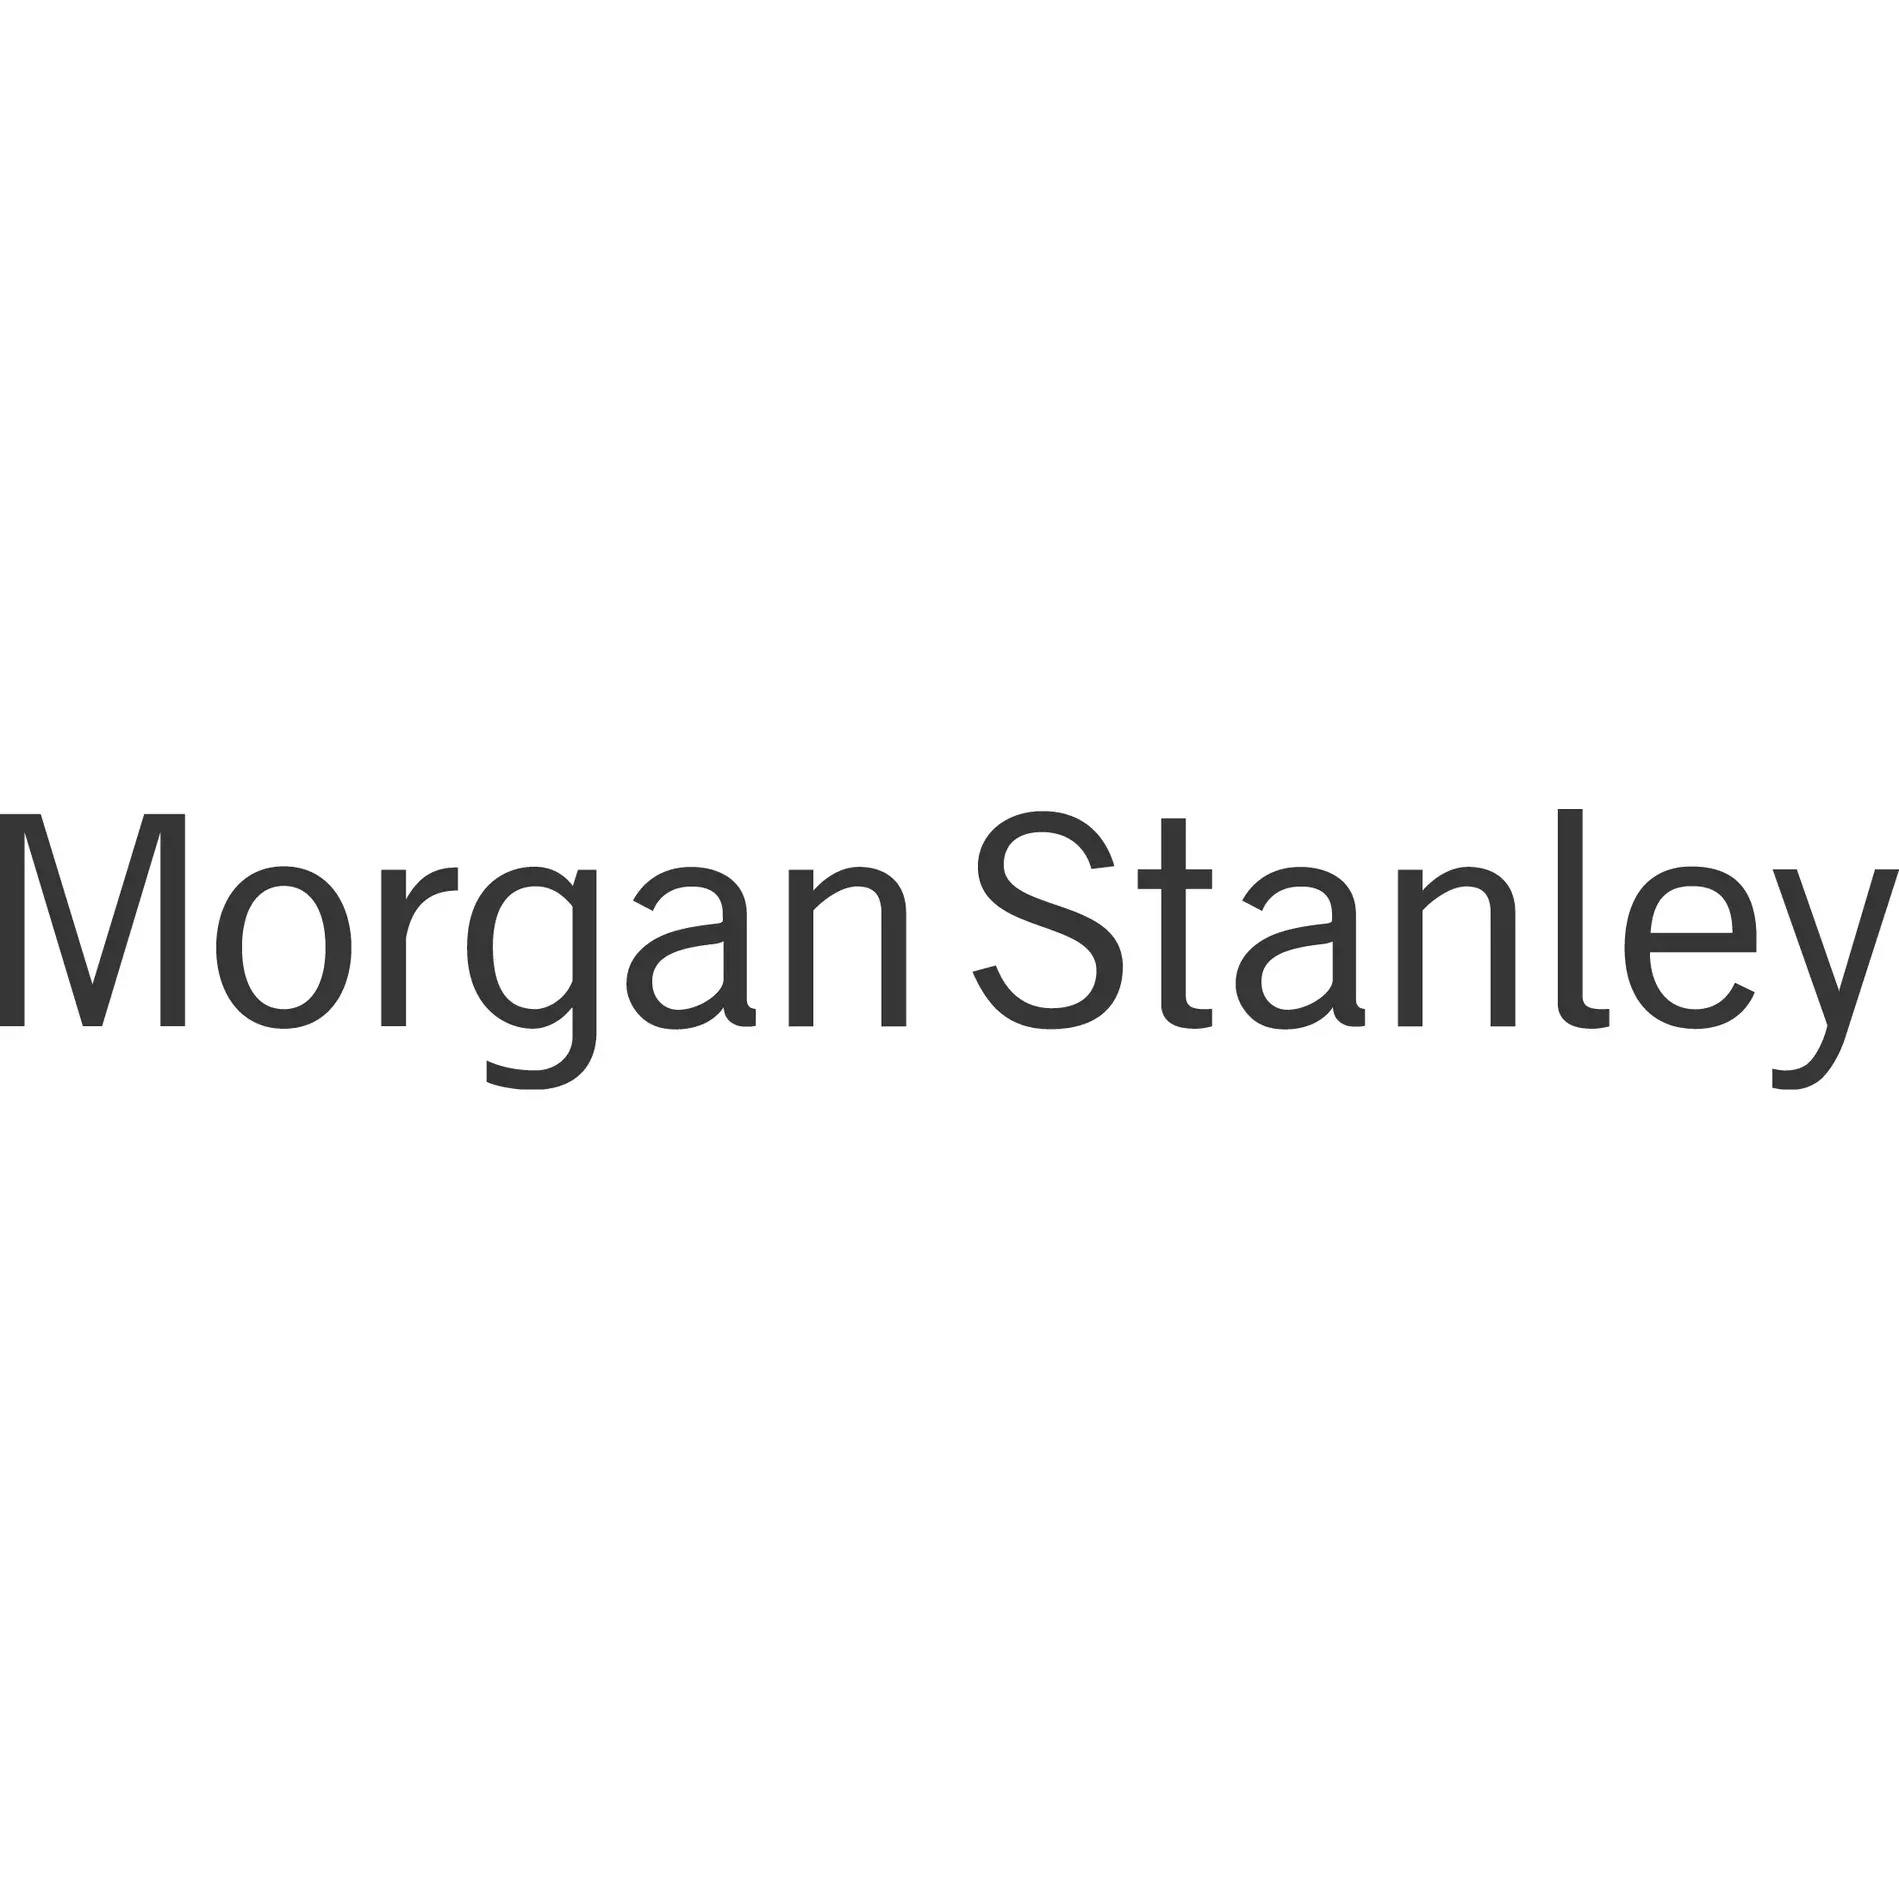 The Minsch Group - Morgan Stanley | Financial Advisor in Morristown,New Jersey